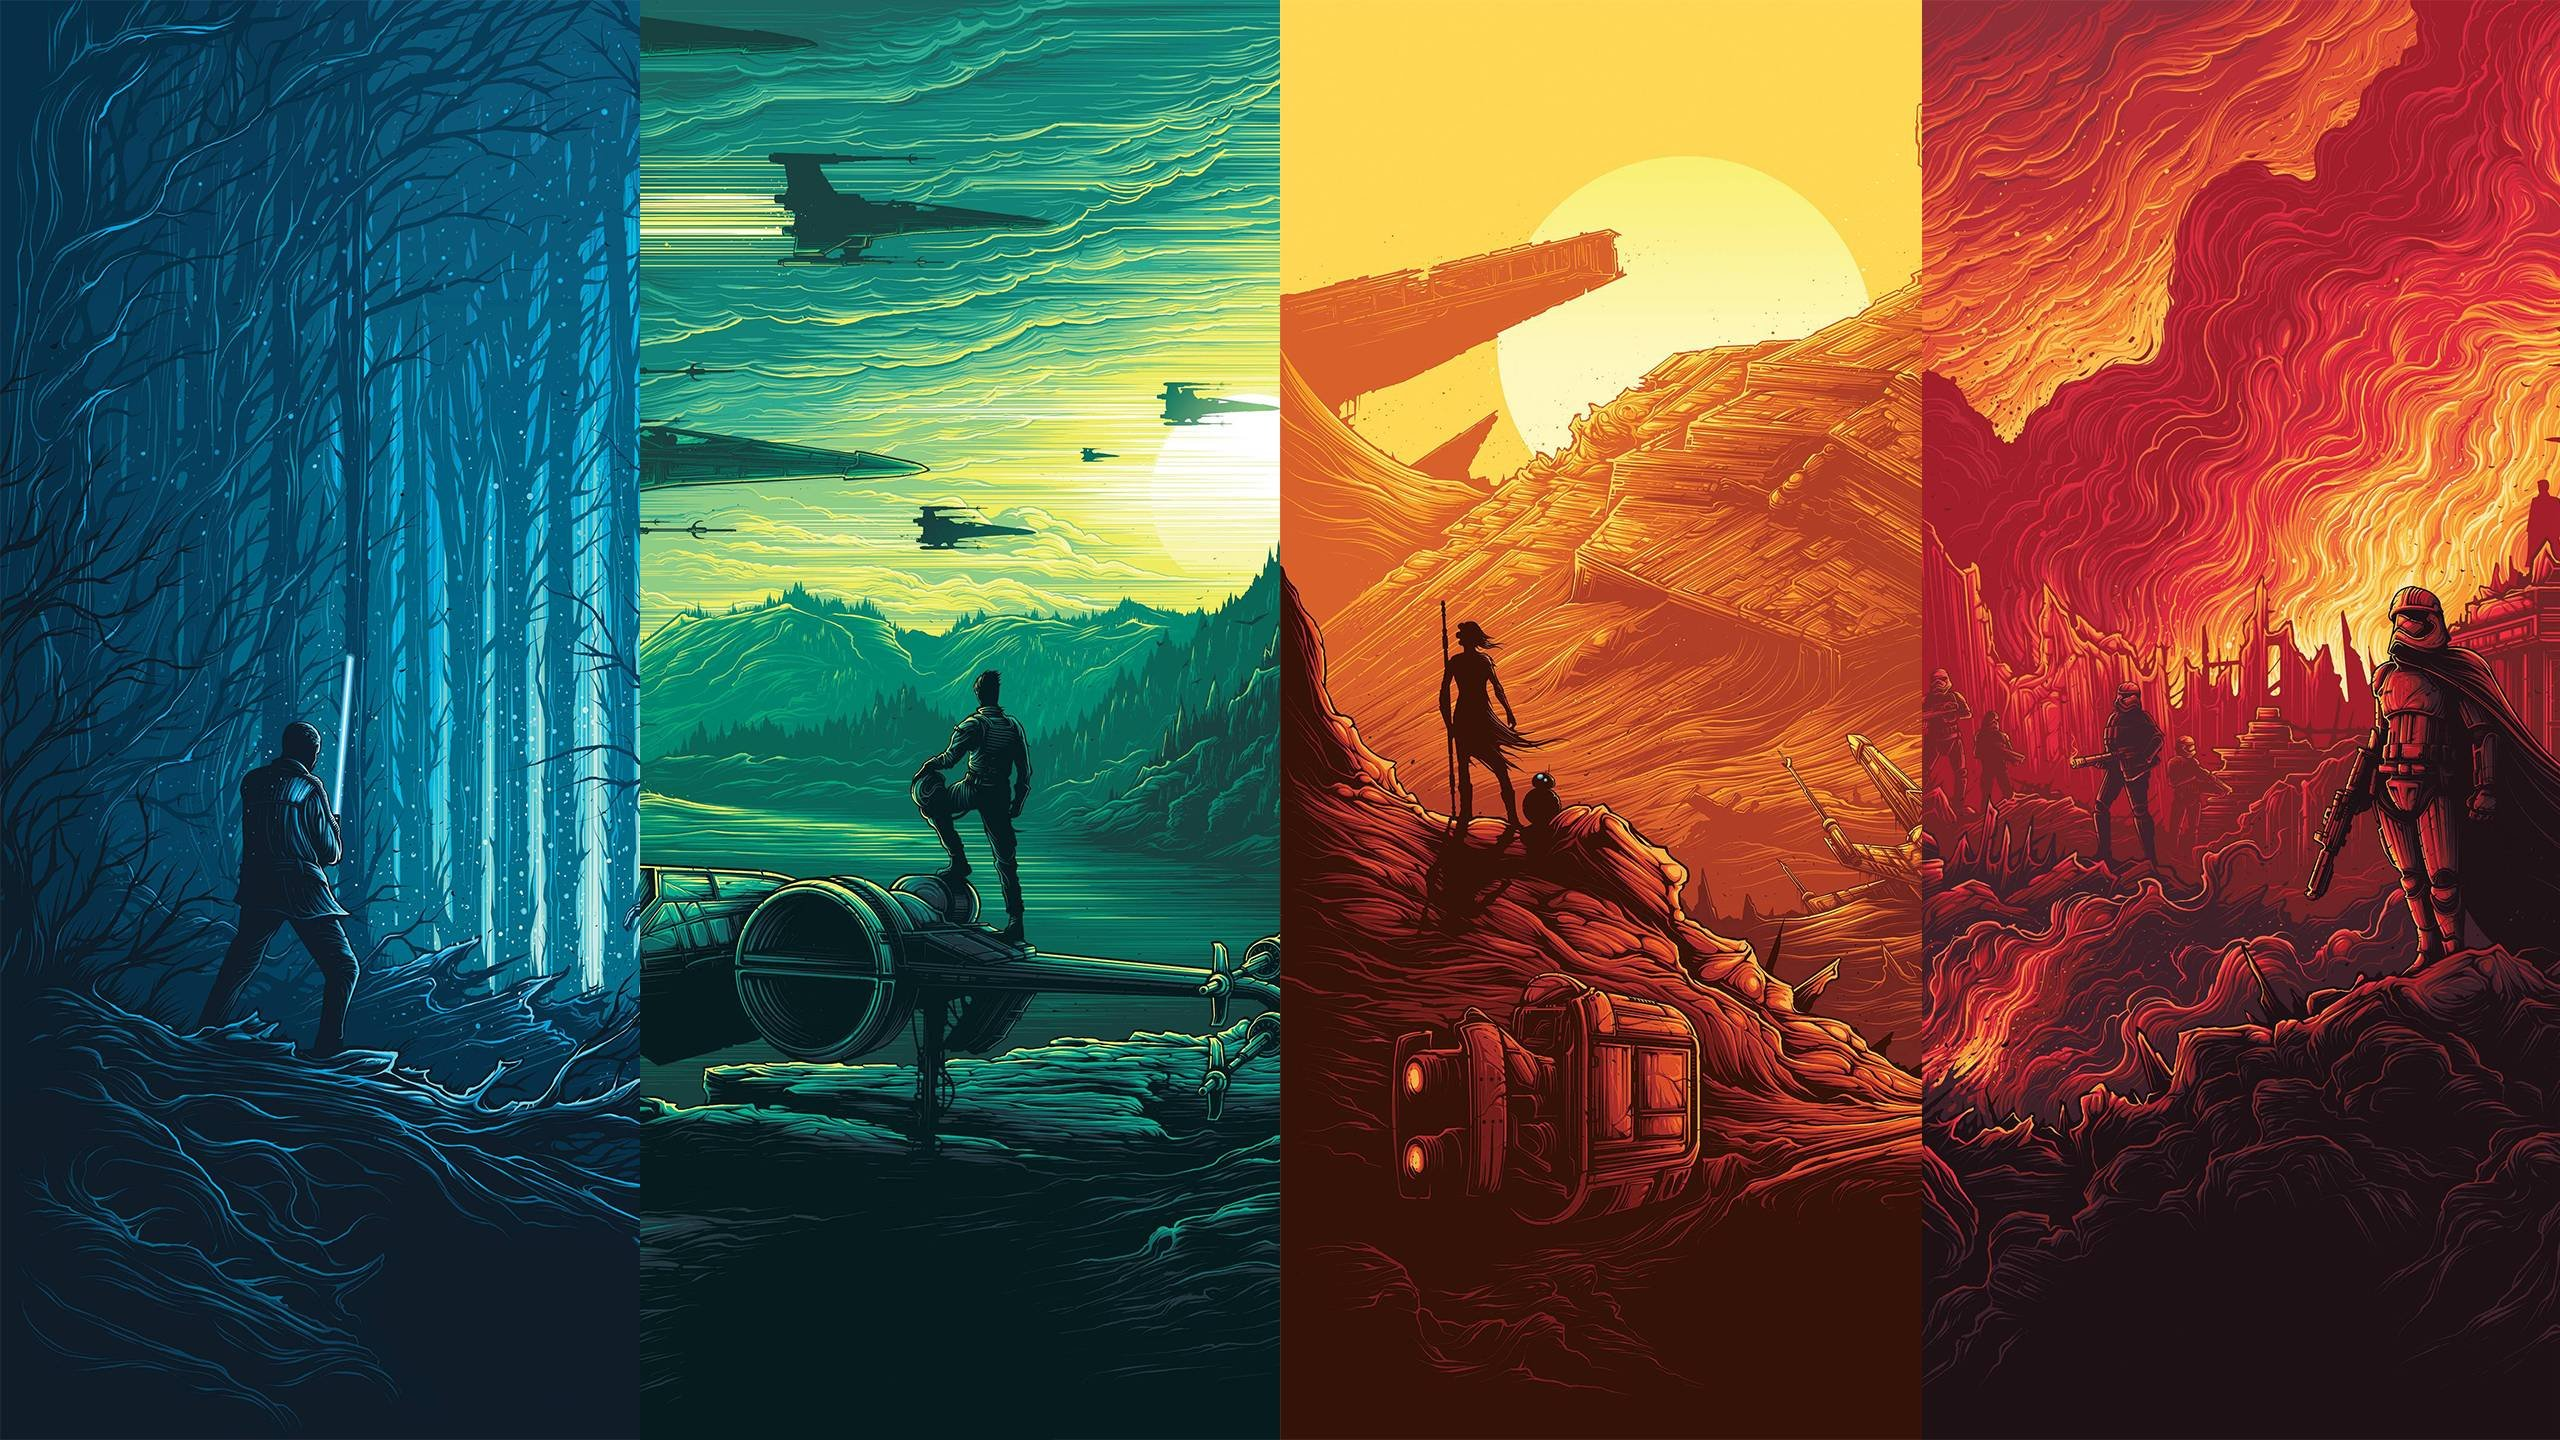 Star Wars Force Awakens wallpaper